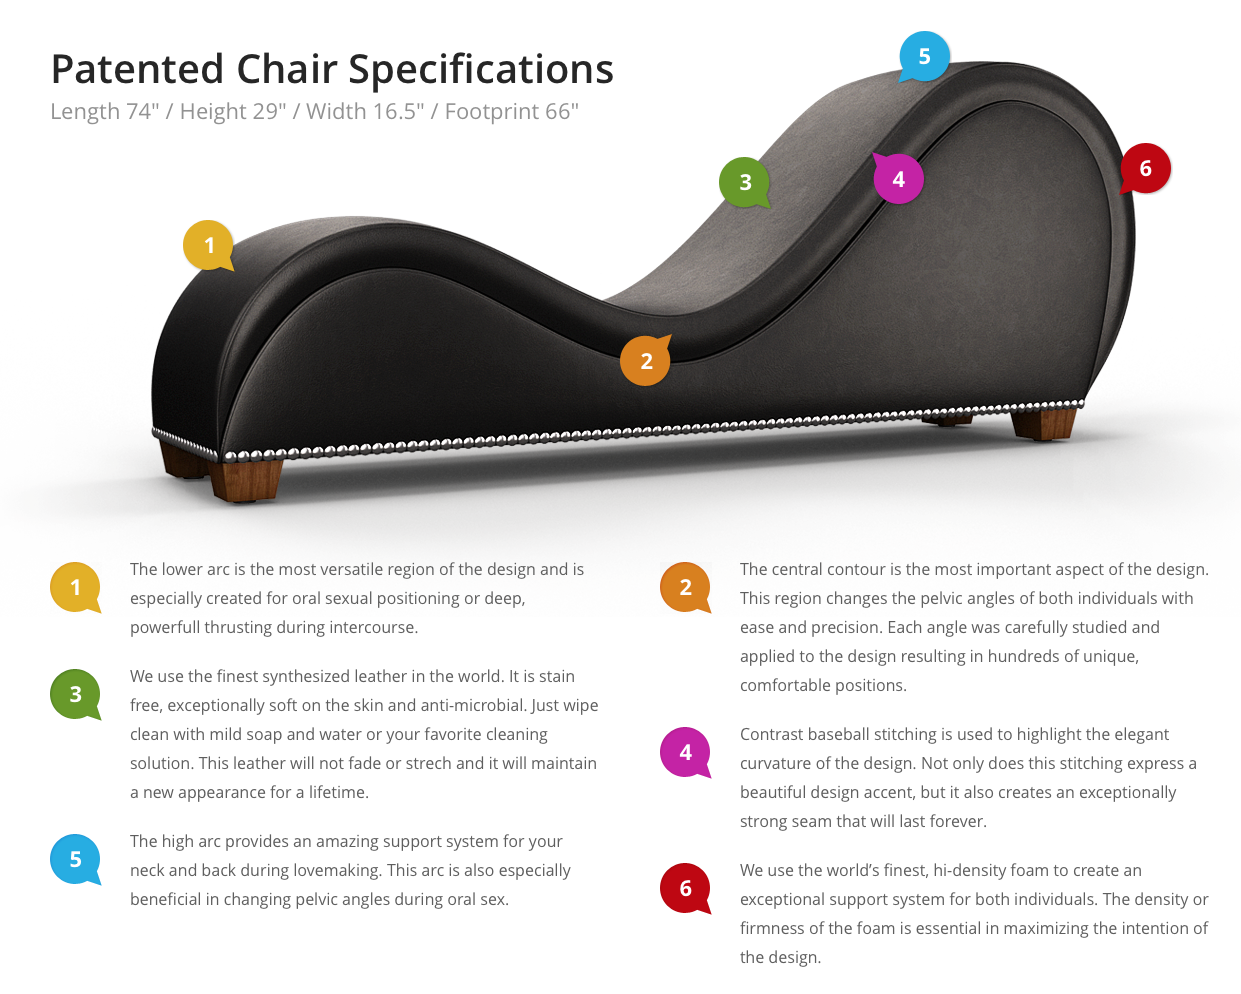 Tantra Chair Sex Discount Chaise Lounge Chairs Outdoor Design Promiscuity Pinterest